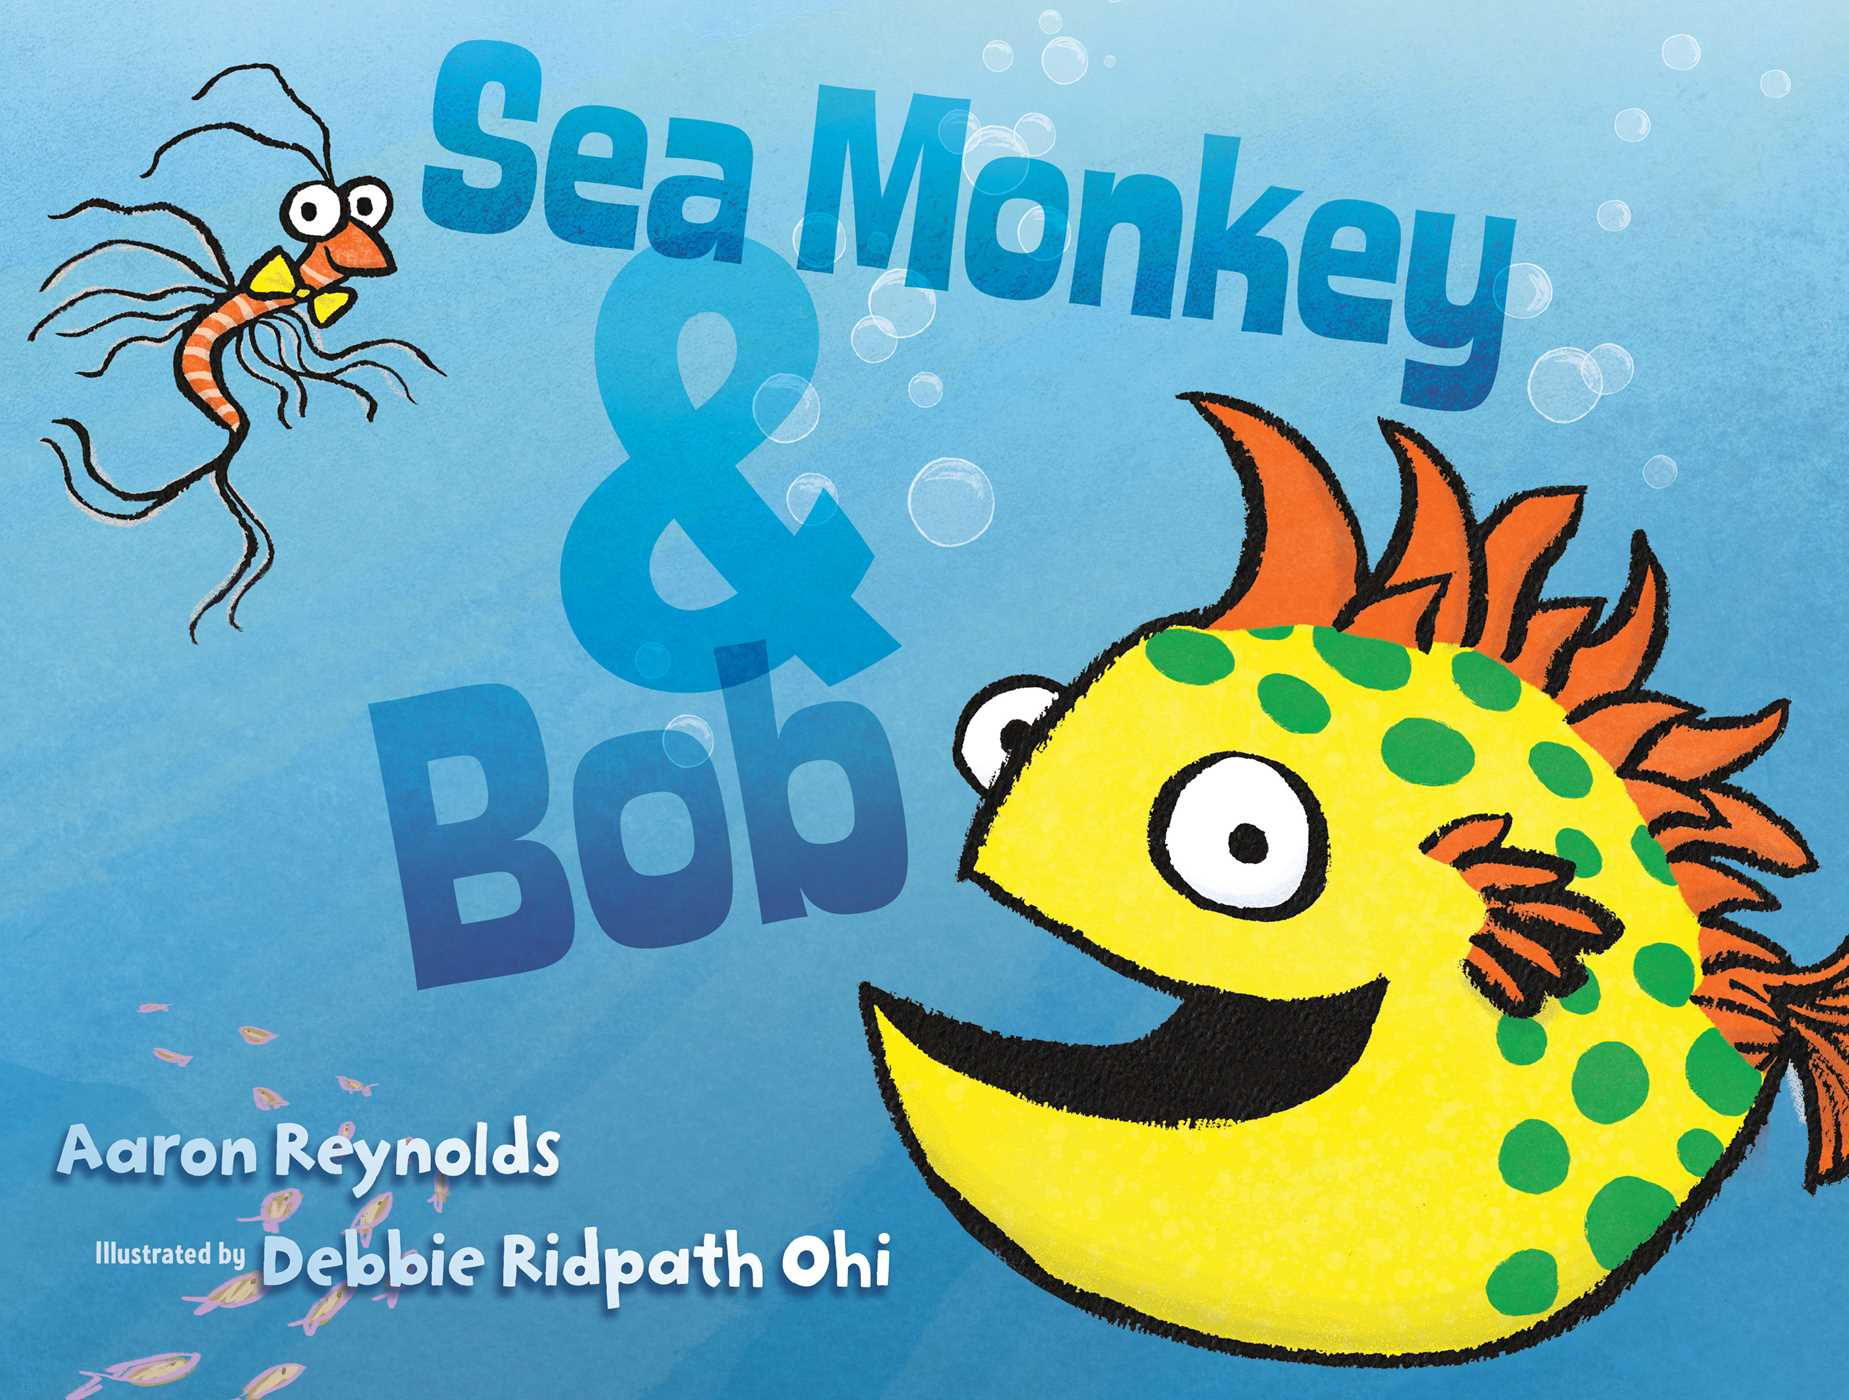 Sea monkey bob 9781481406772 hr